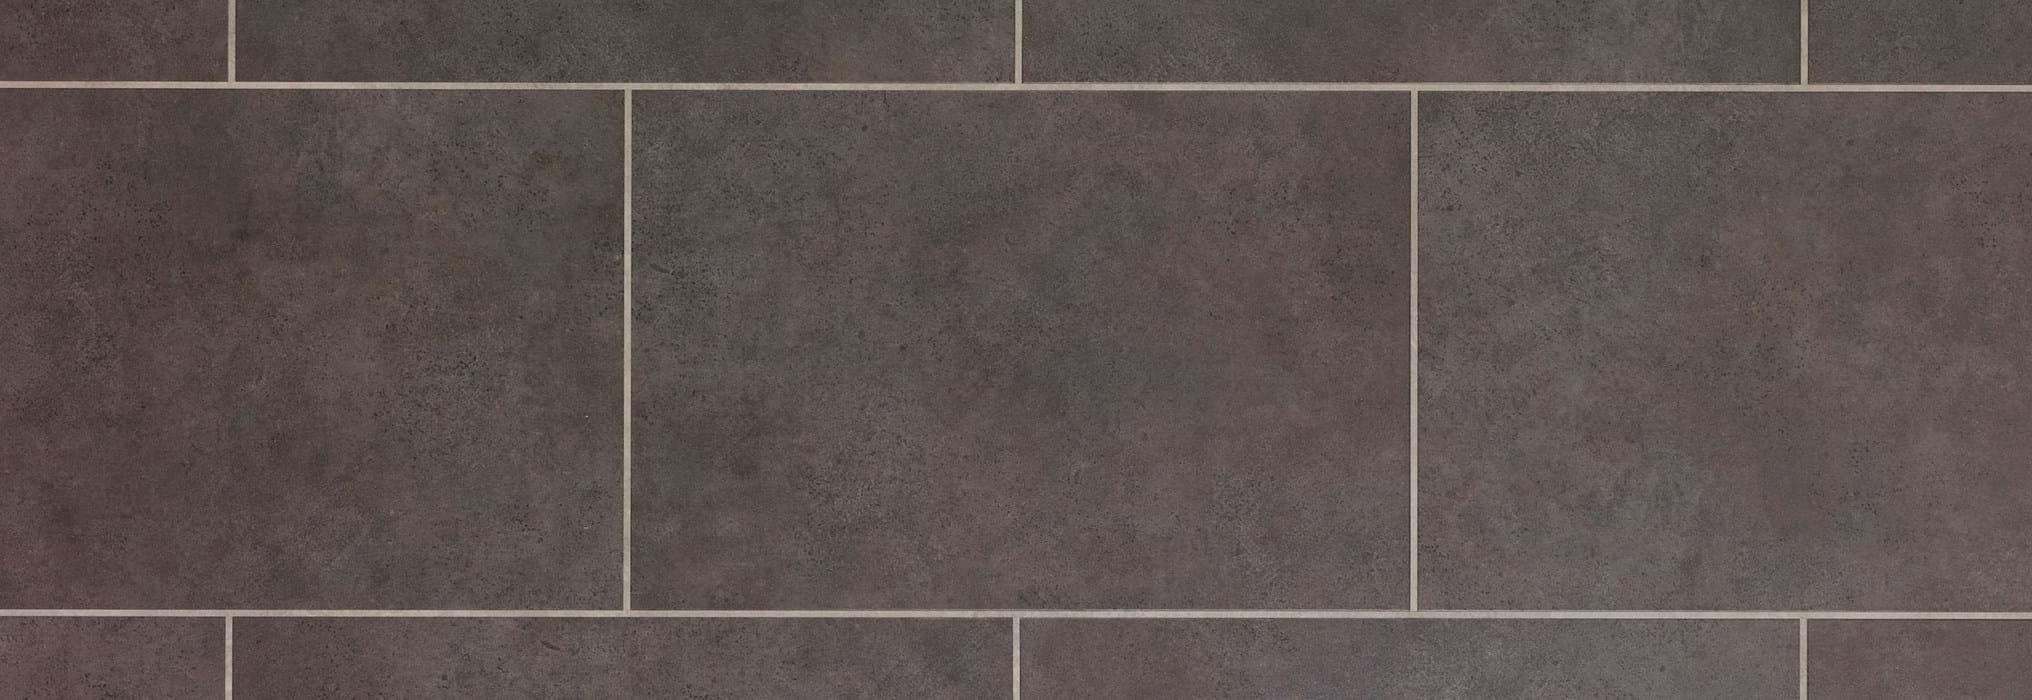 Amtico International: Ceramic Sable - AM5S3593